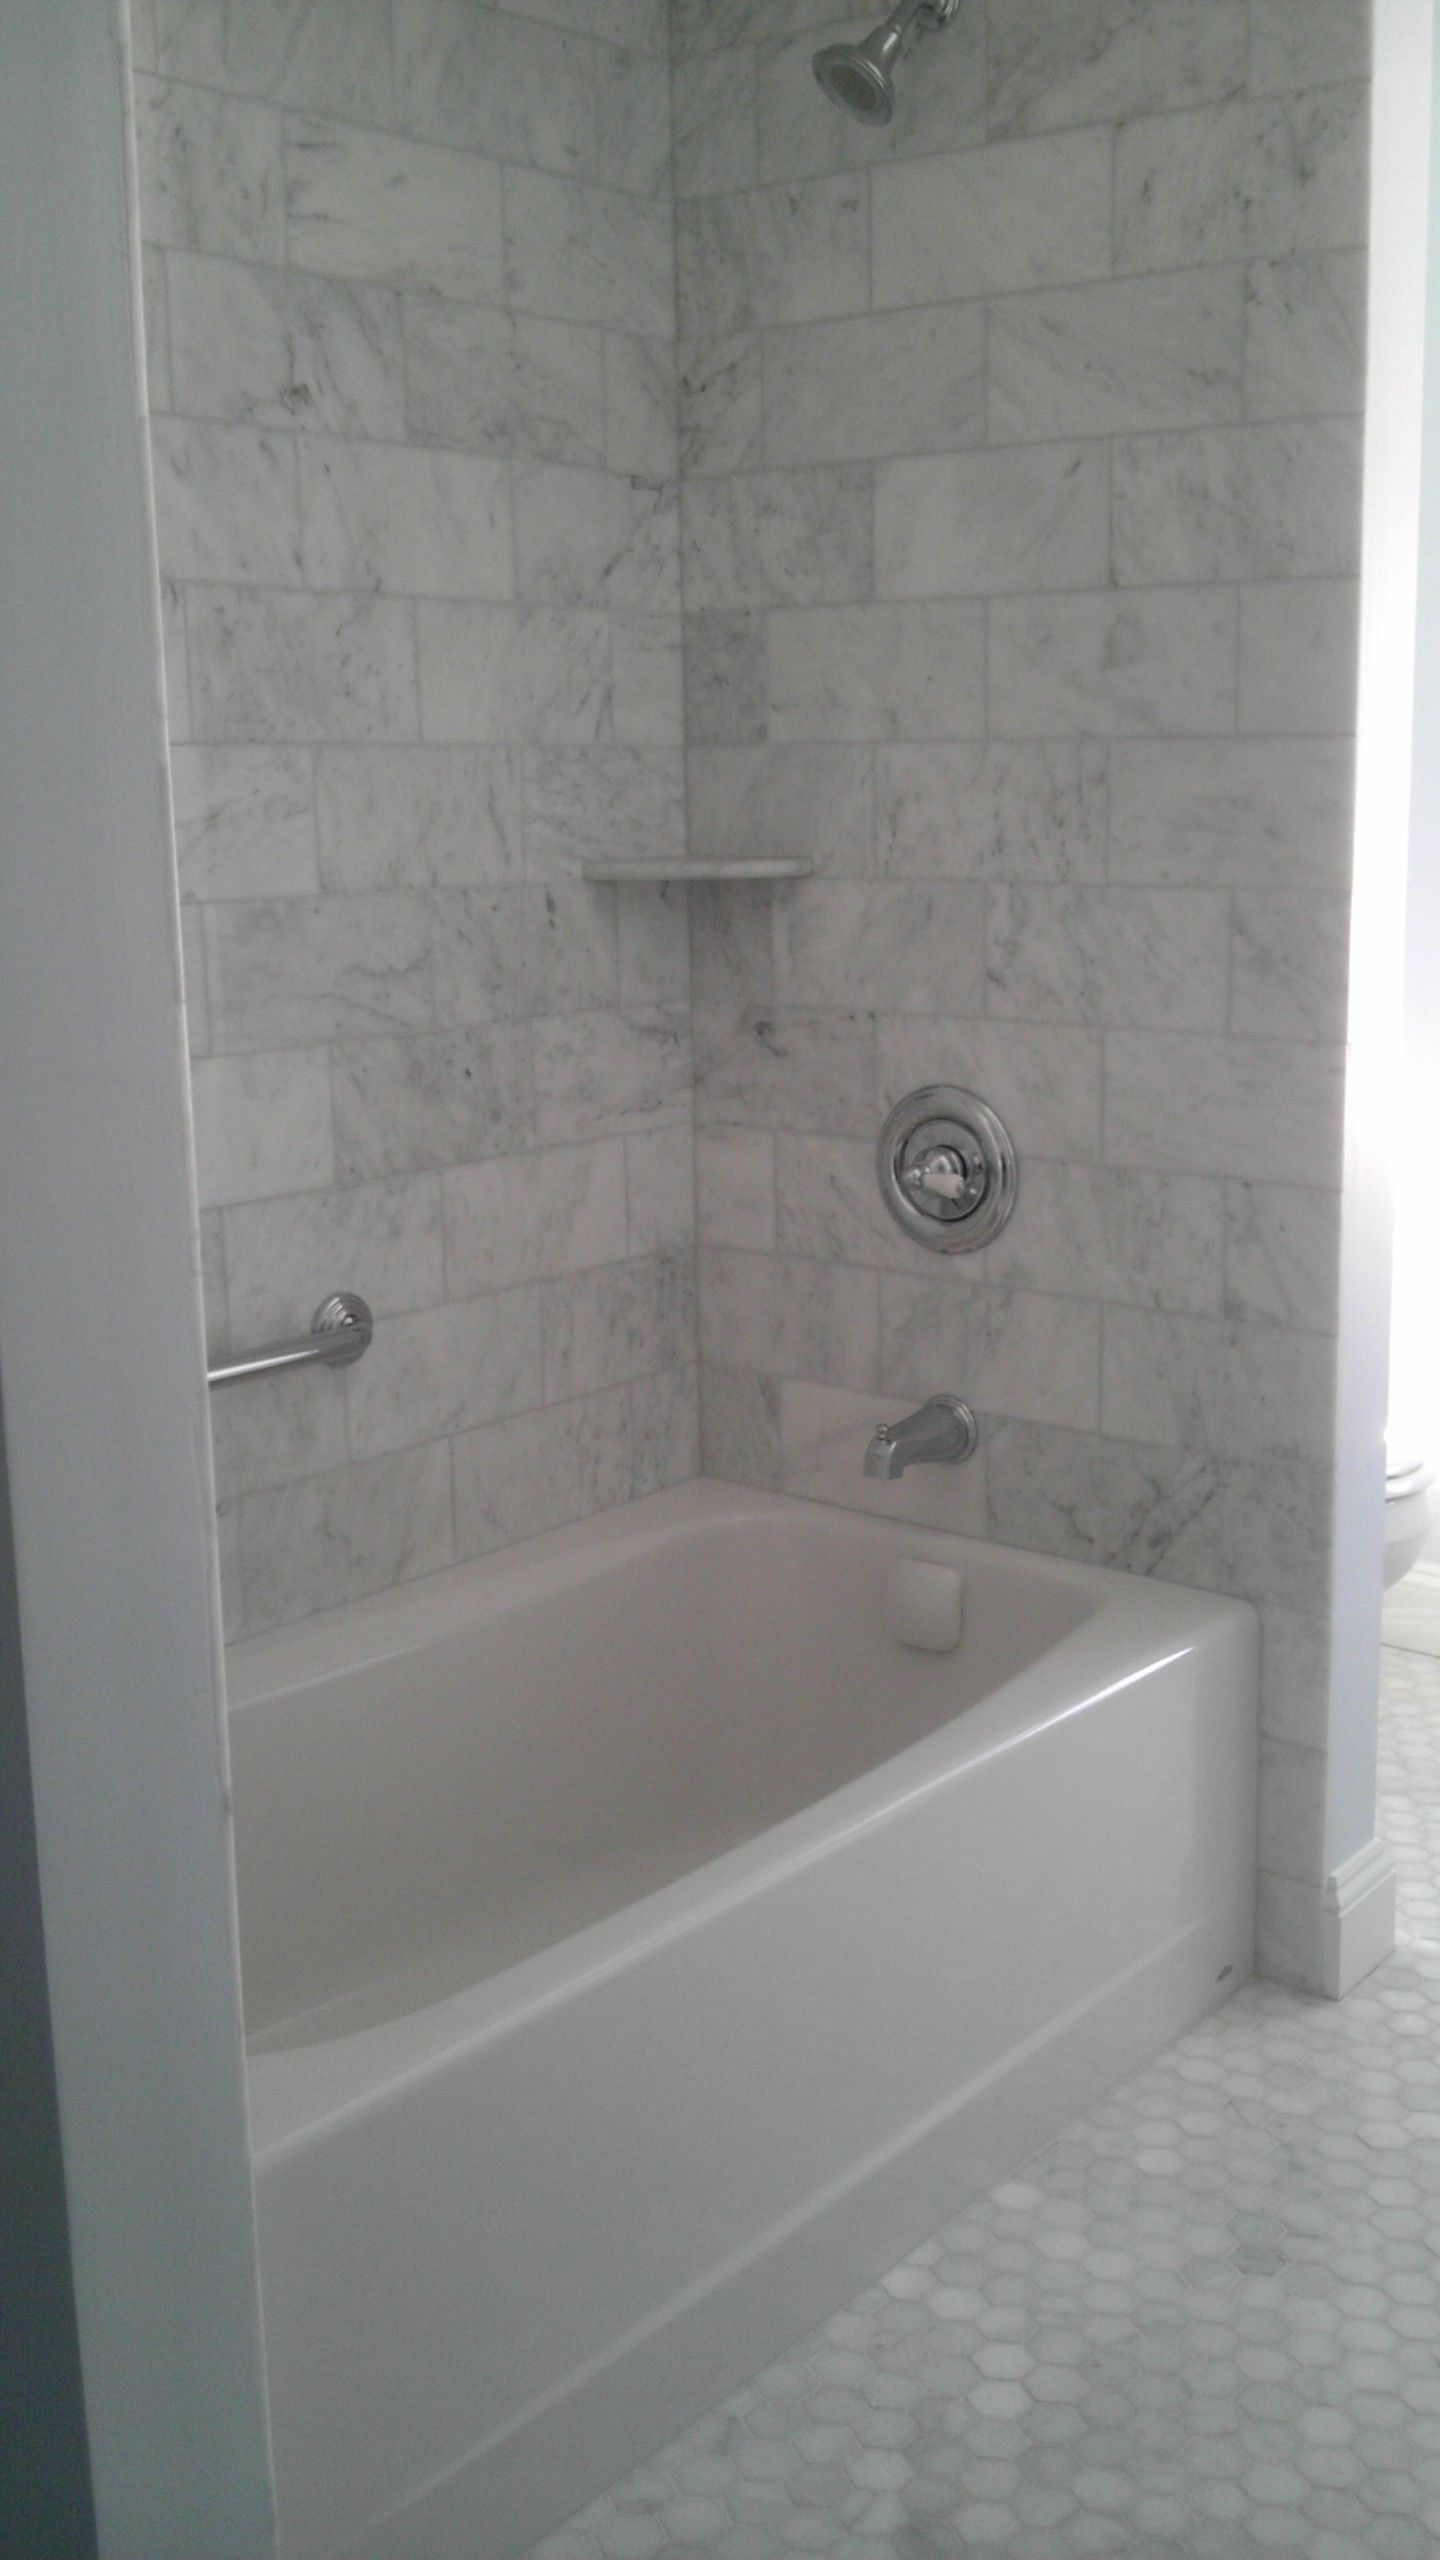 carrara 6x12 shower | Bathrooms remodel, Marble tile ...